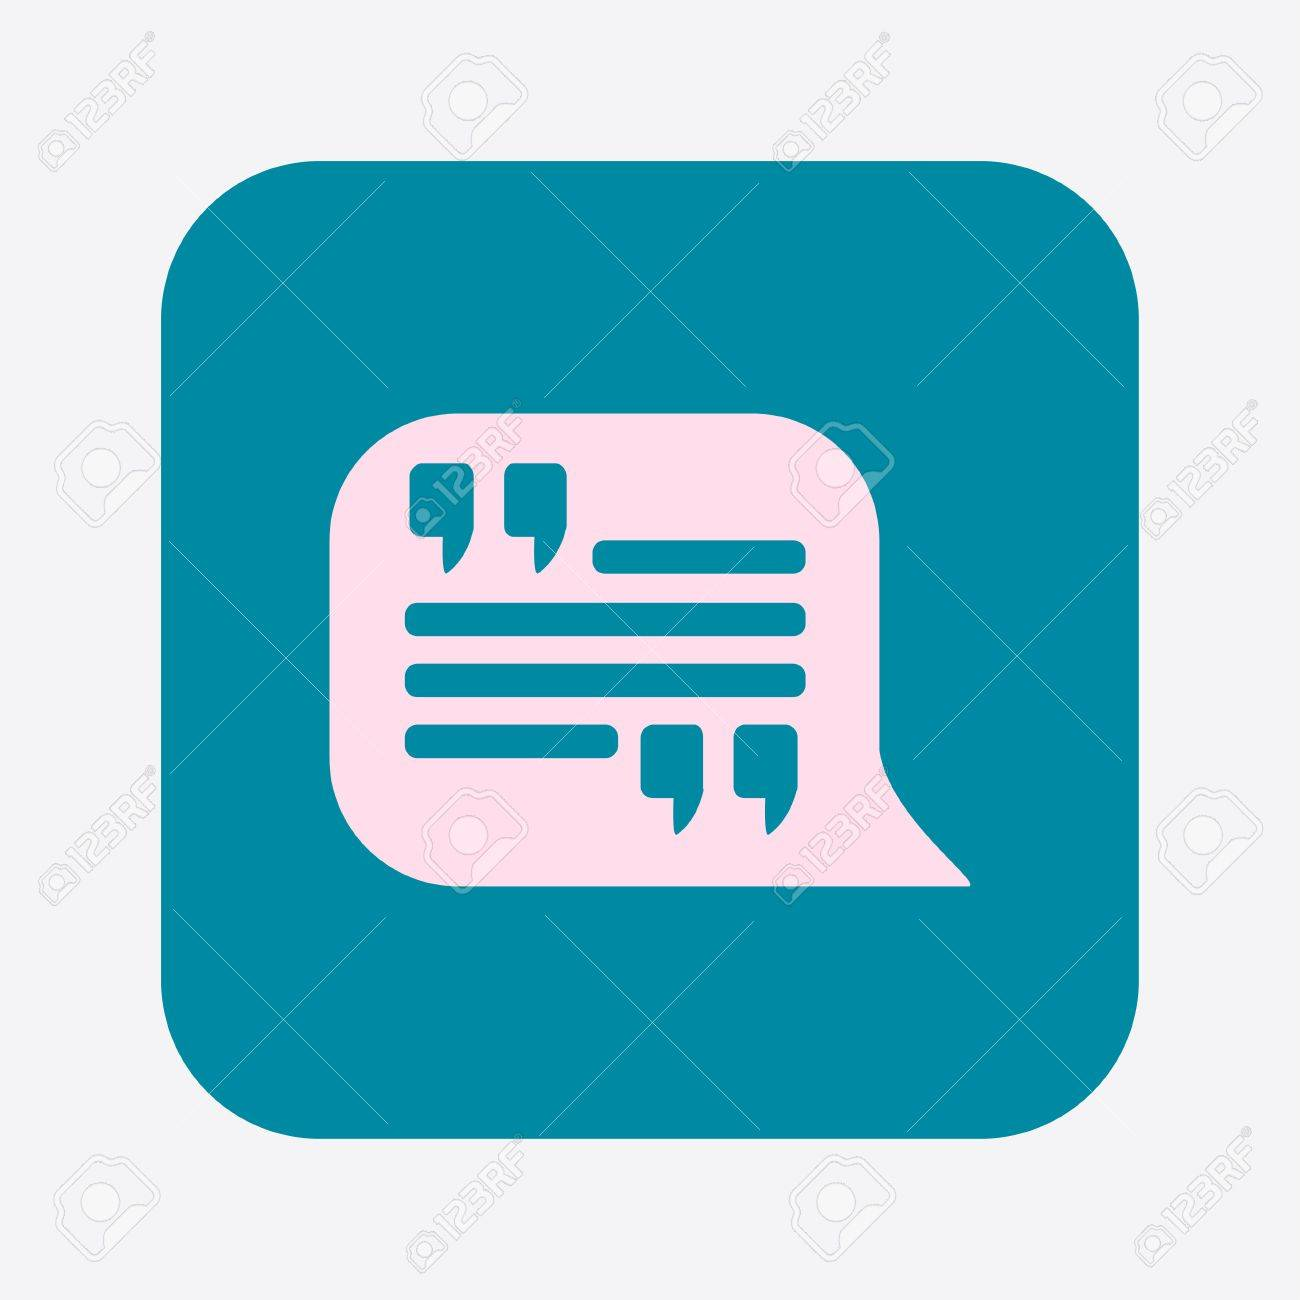 Direct Quote Quote Iconquotation Mark In Speech Bubble Symboldirect Oration